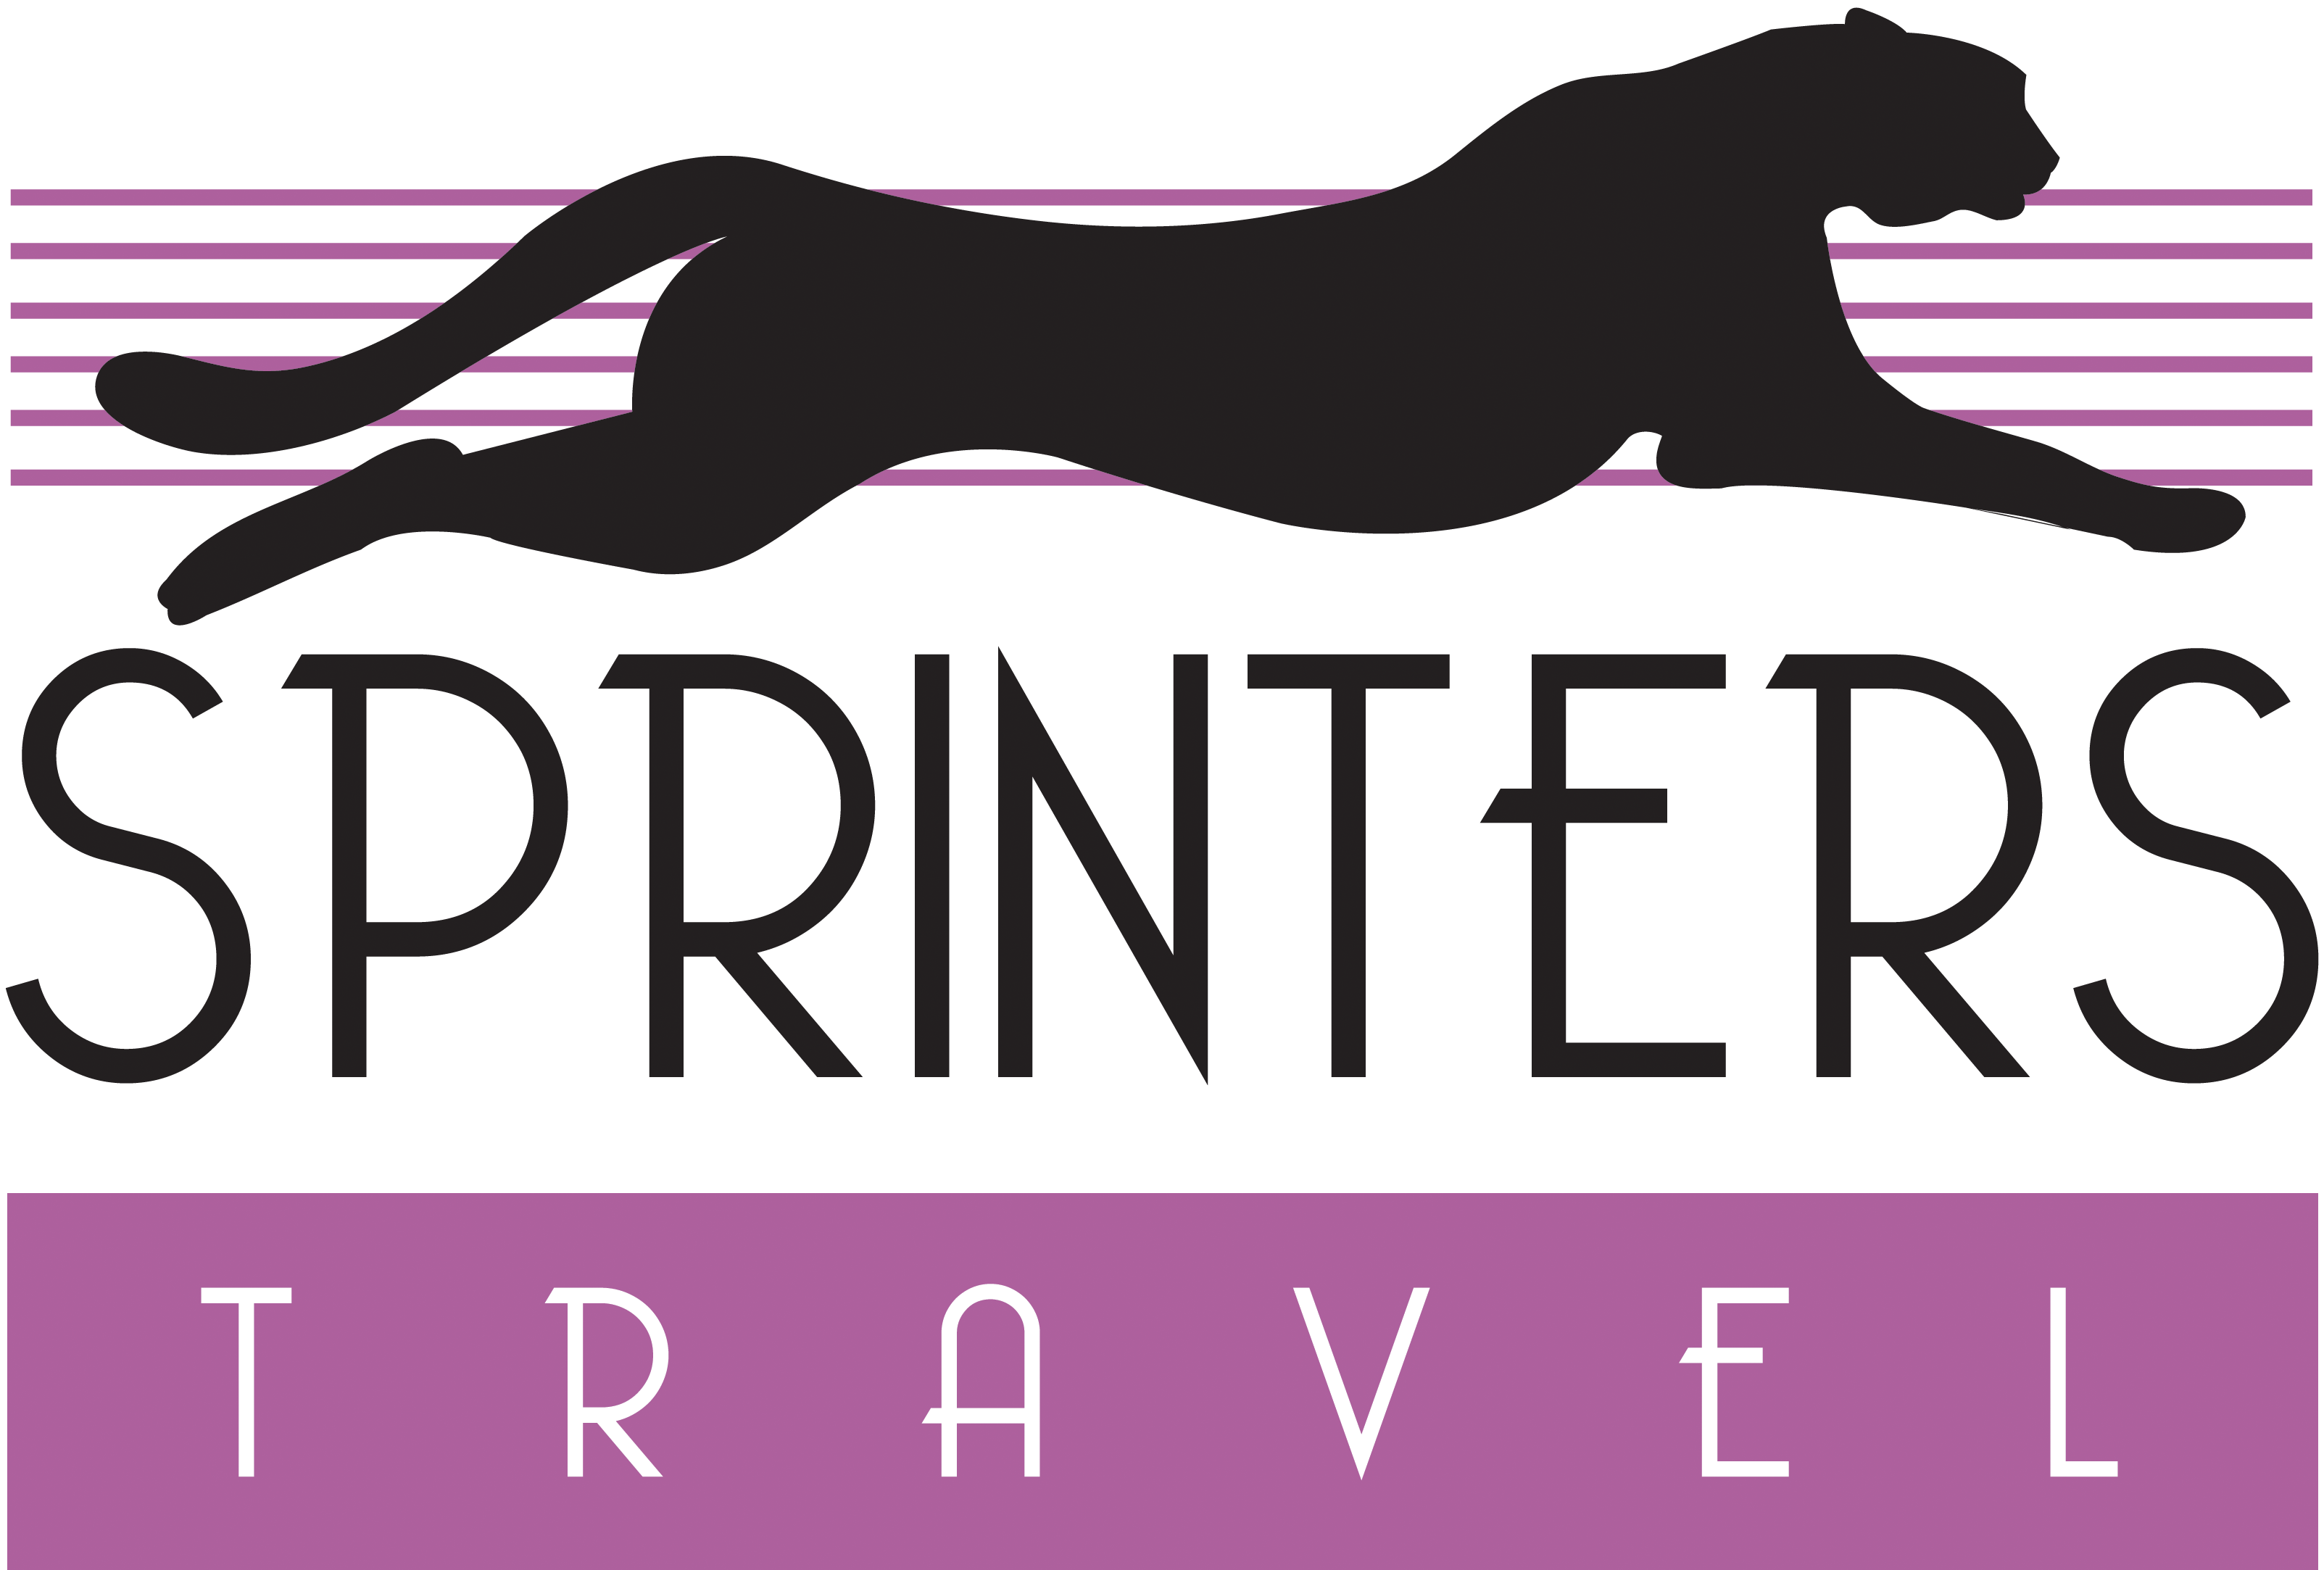 Sprinters Travel | Sprinters Travel - Minibus hire with drivers - Sprinters Travel Blog